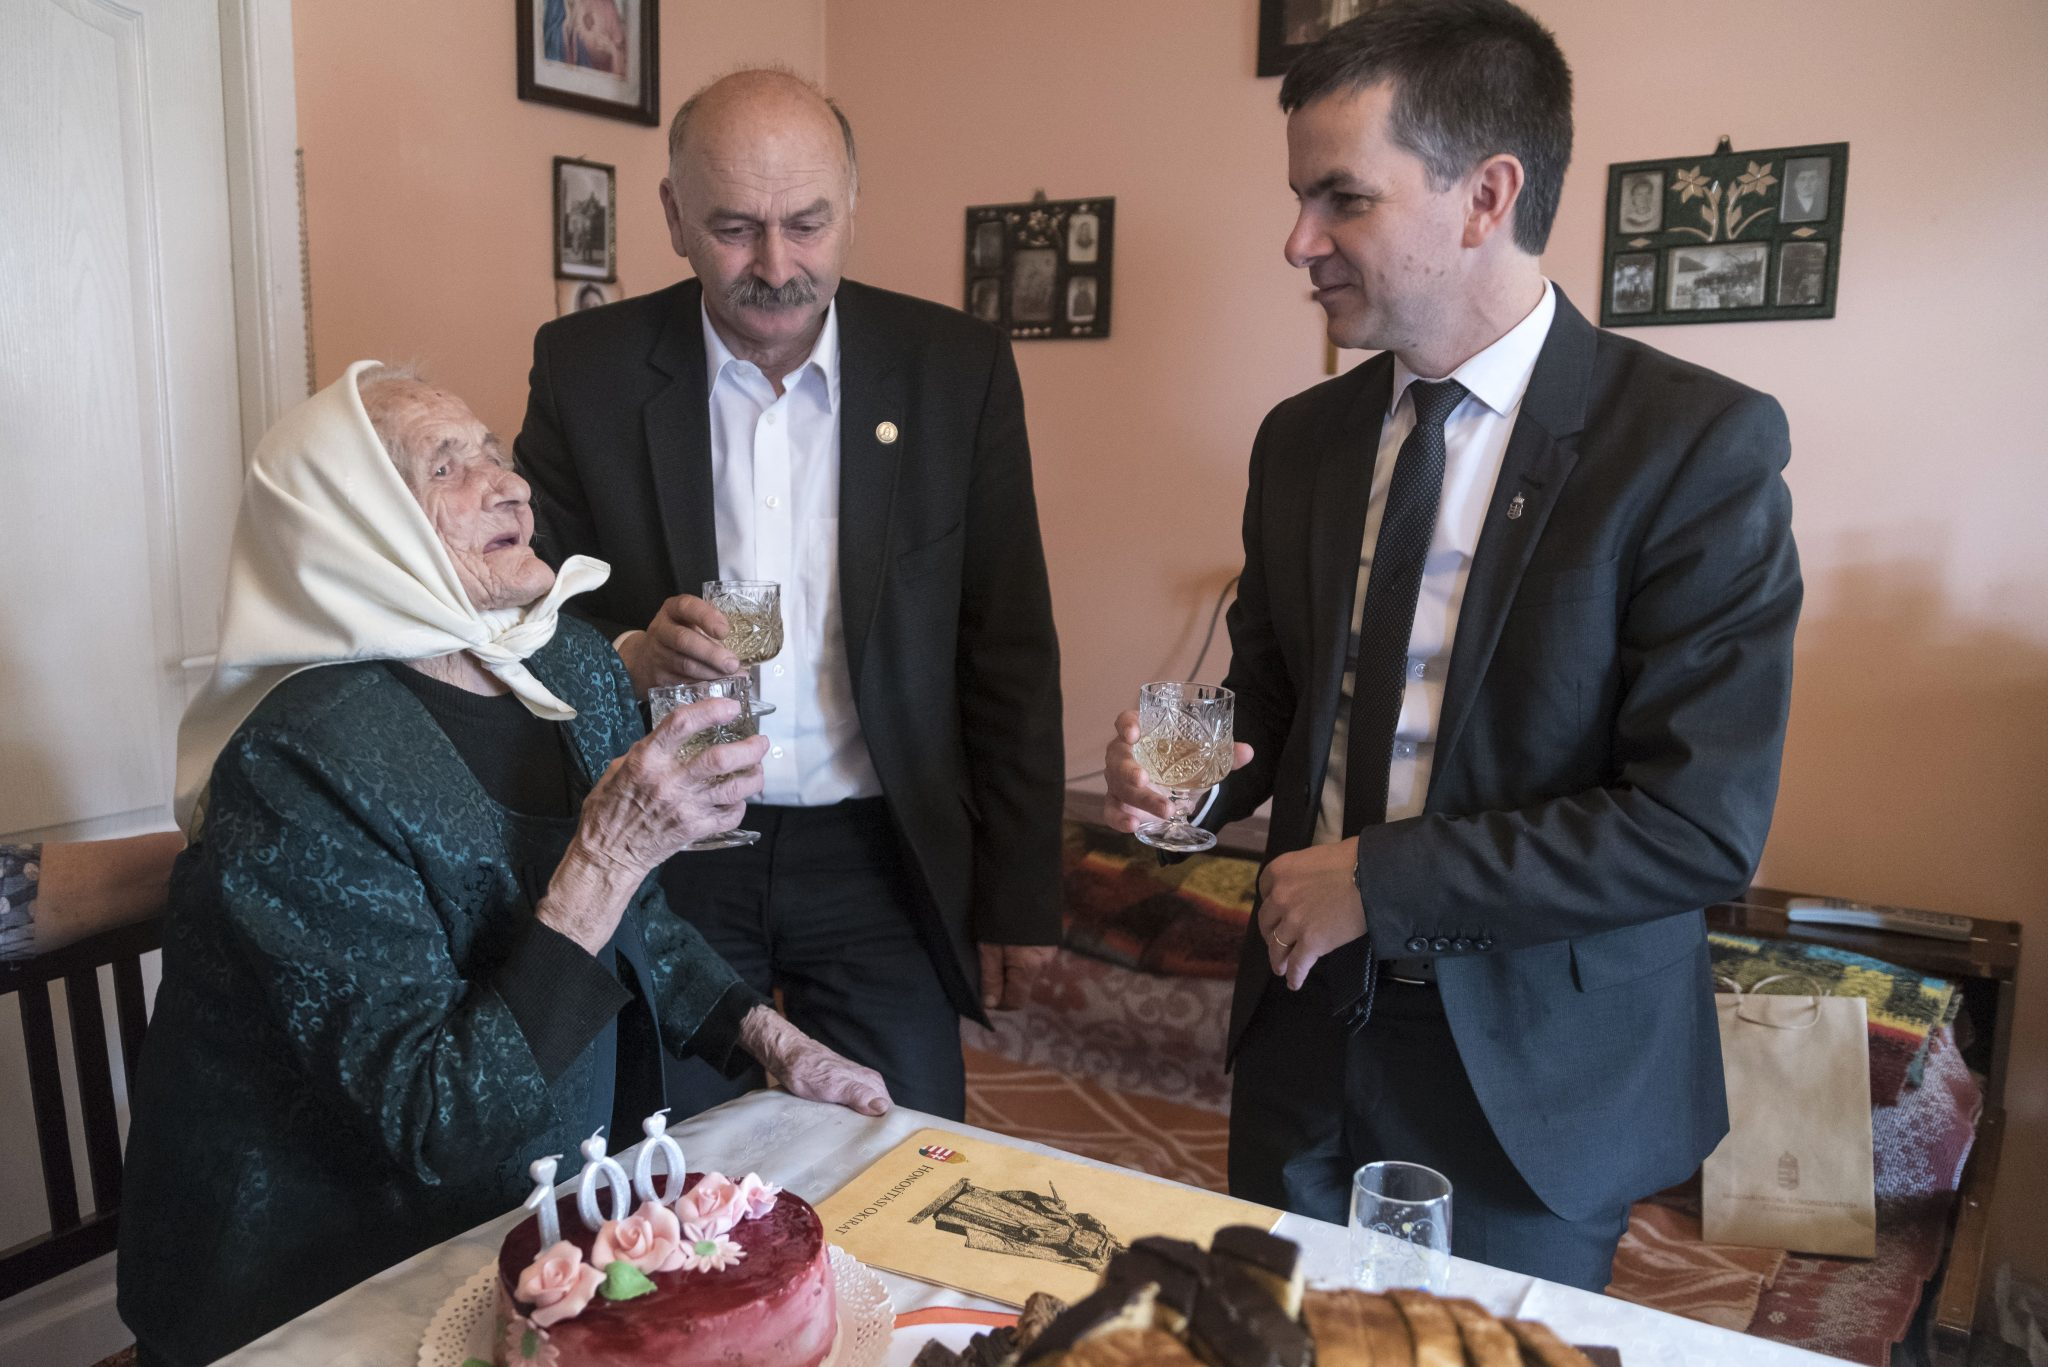 100-Year-Old Transylvanian Woman Receives Hungarian Citizenship for the Third Time in Her Life